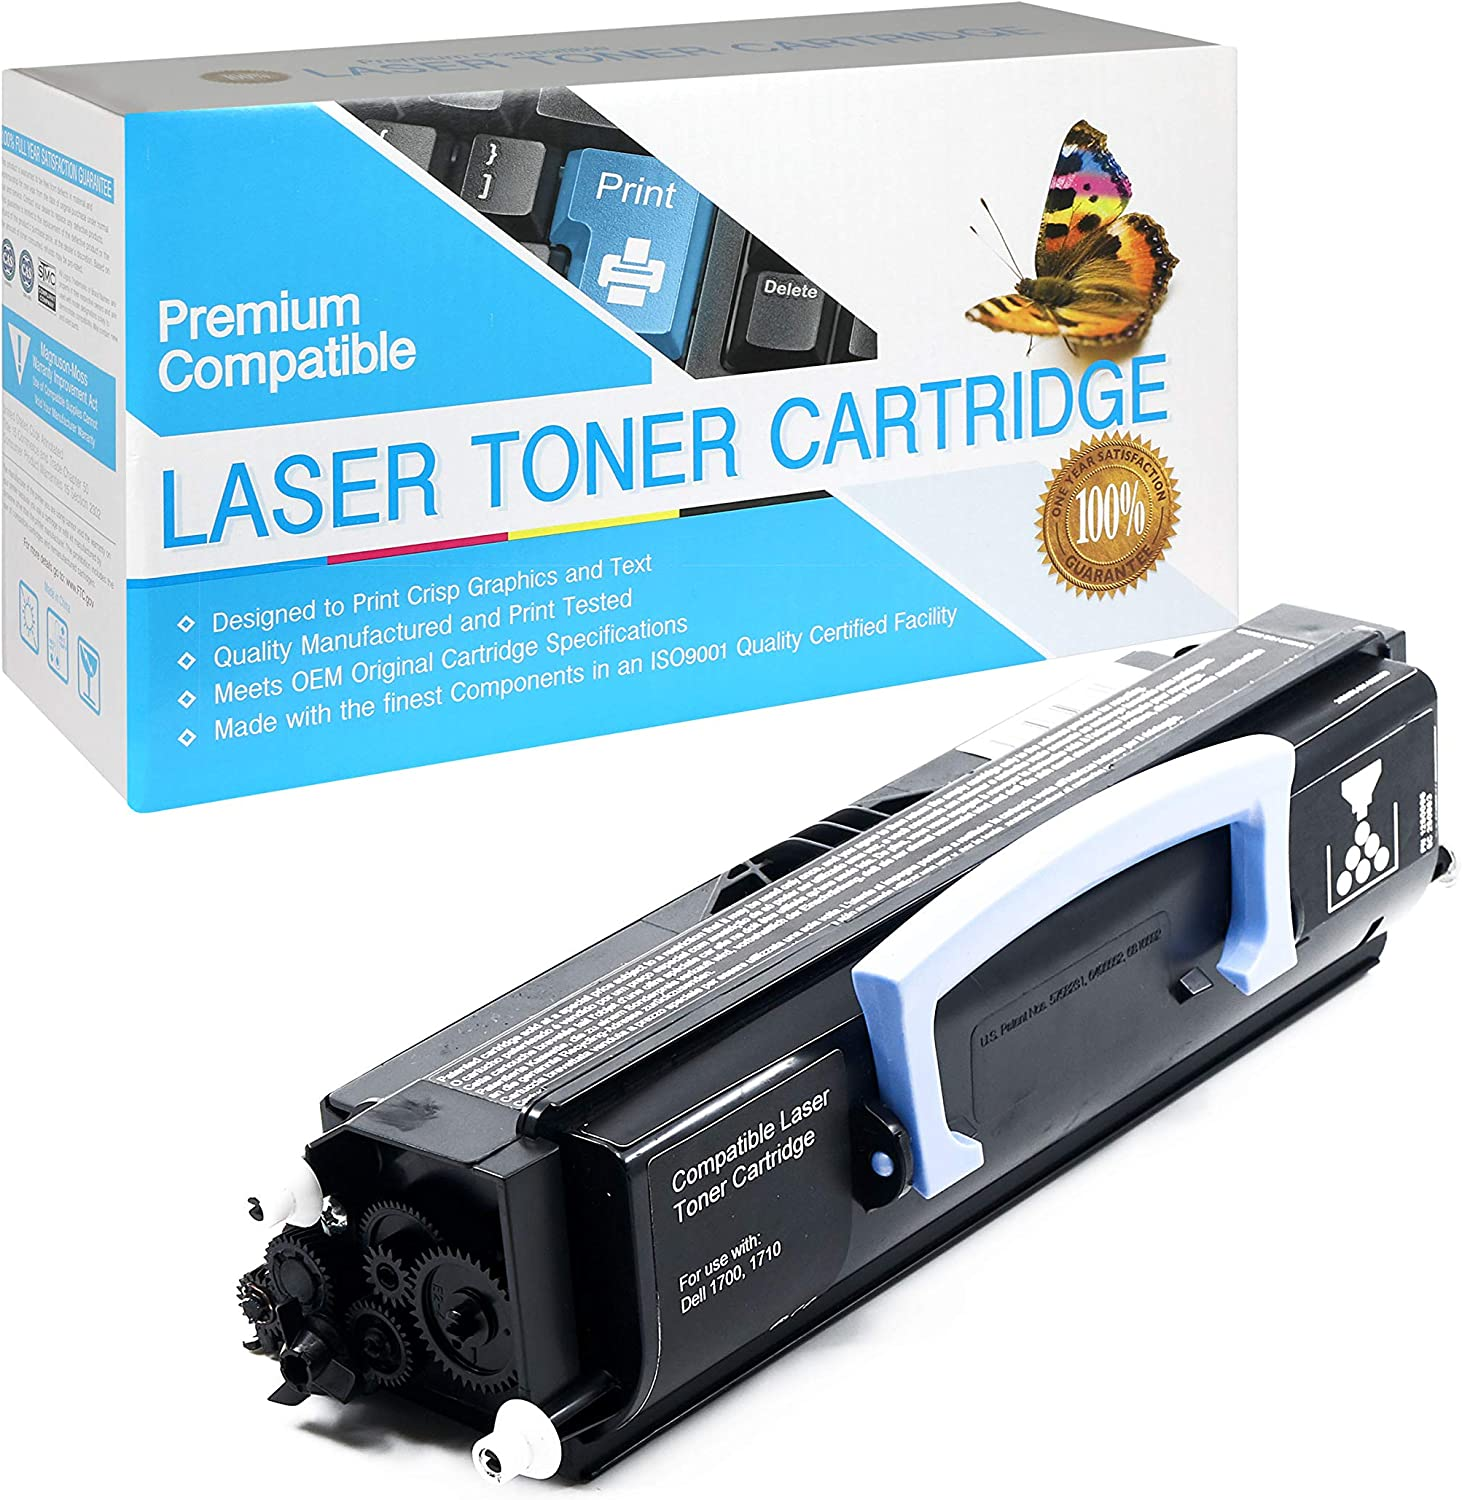 USA Advantage Compatible Toner Cartridge Replacement for Dell 1700/1710 / 310-5399/310-7023/310-5400/310-7025/310-5401/310-7038/310-5402/310-7039/310-7020/310-7040 (Black,1 Pack)